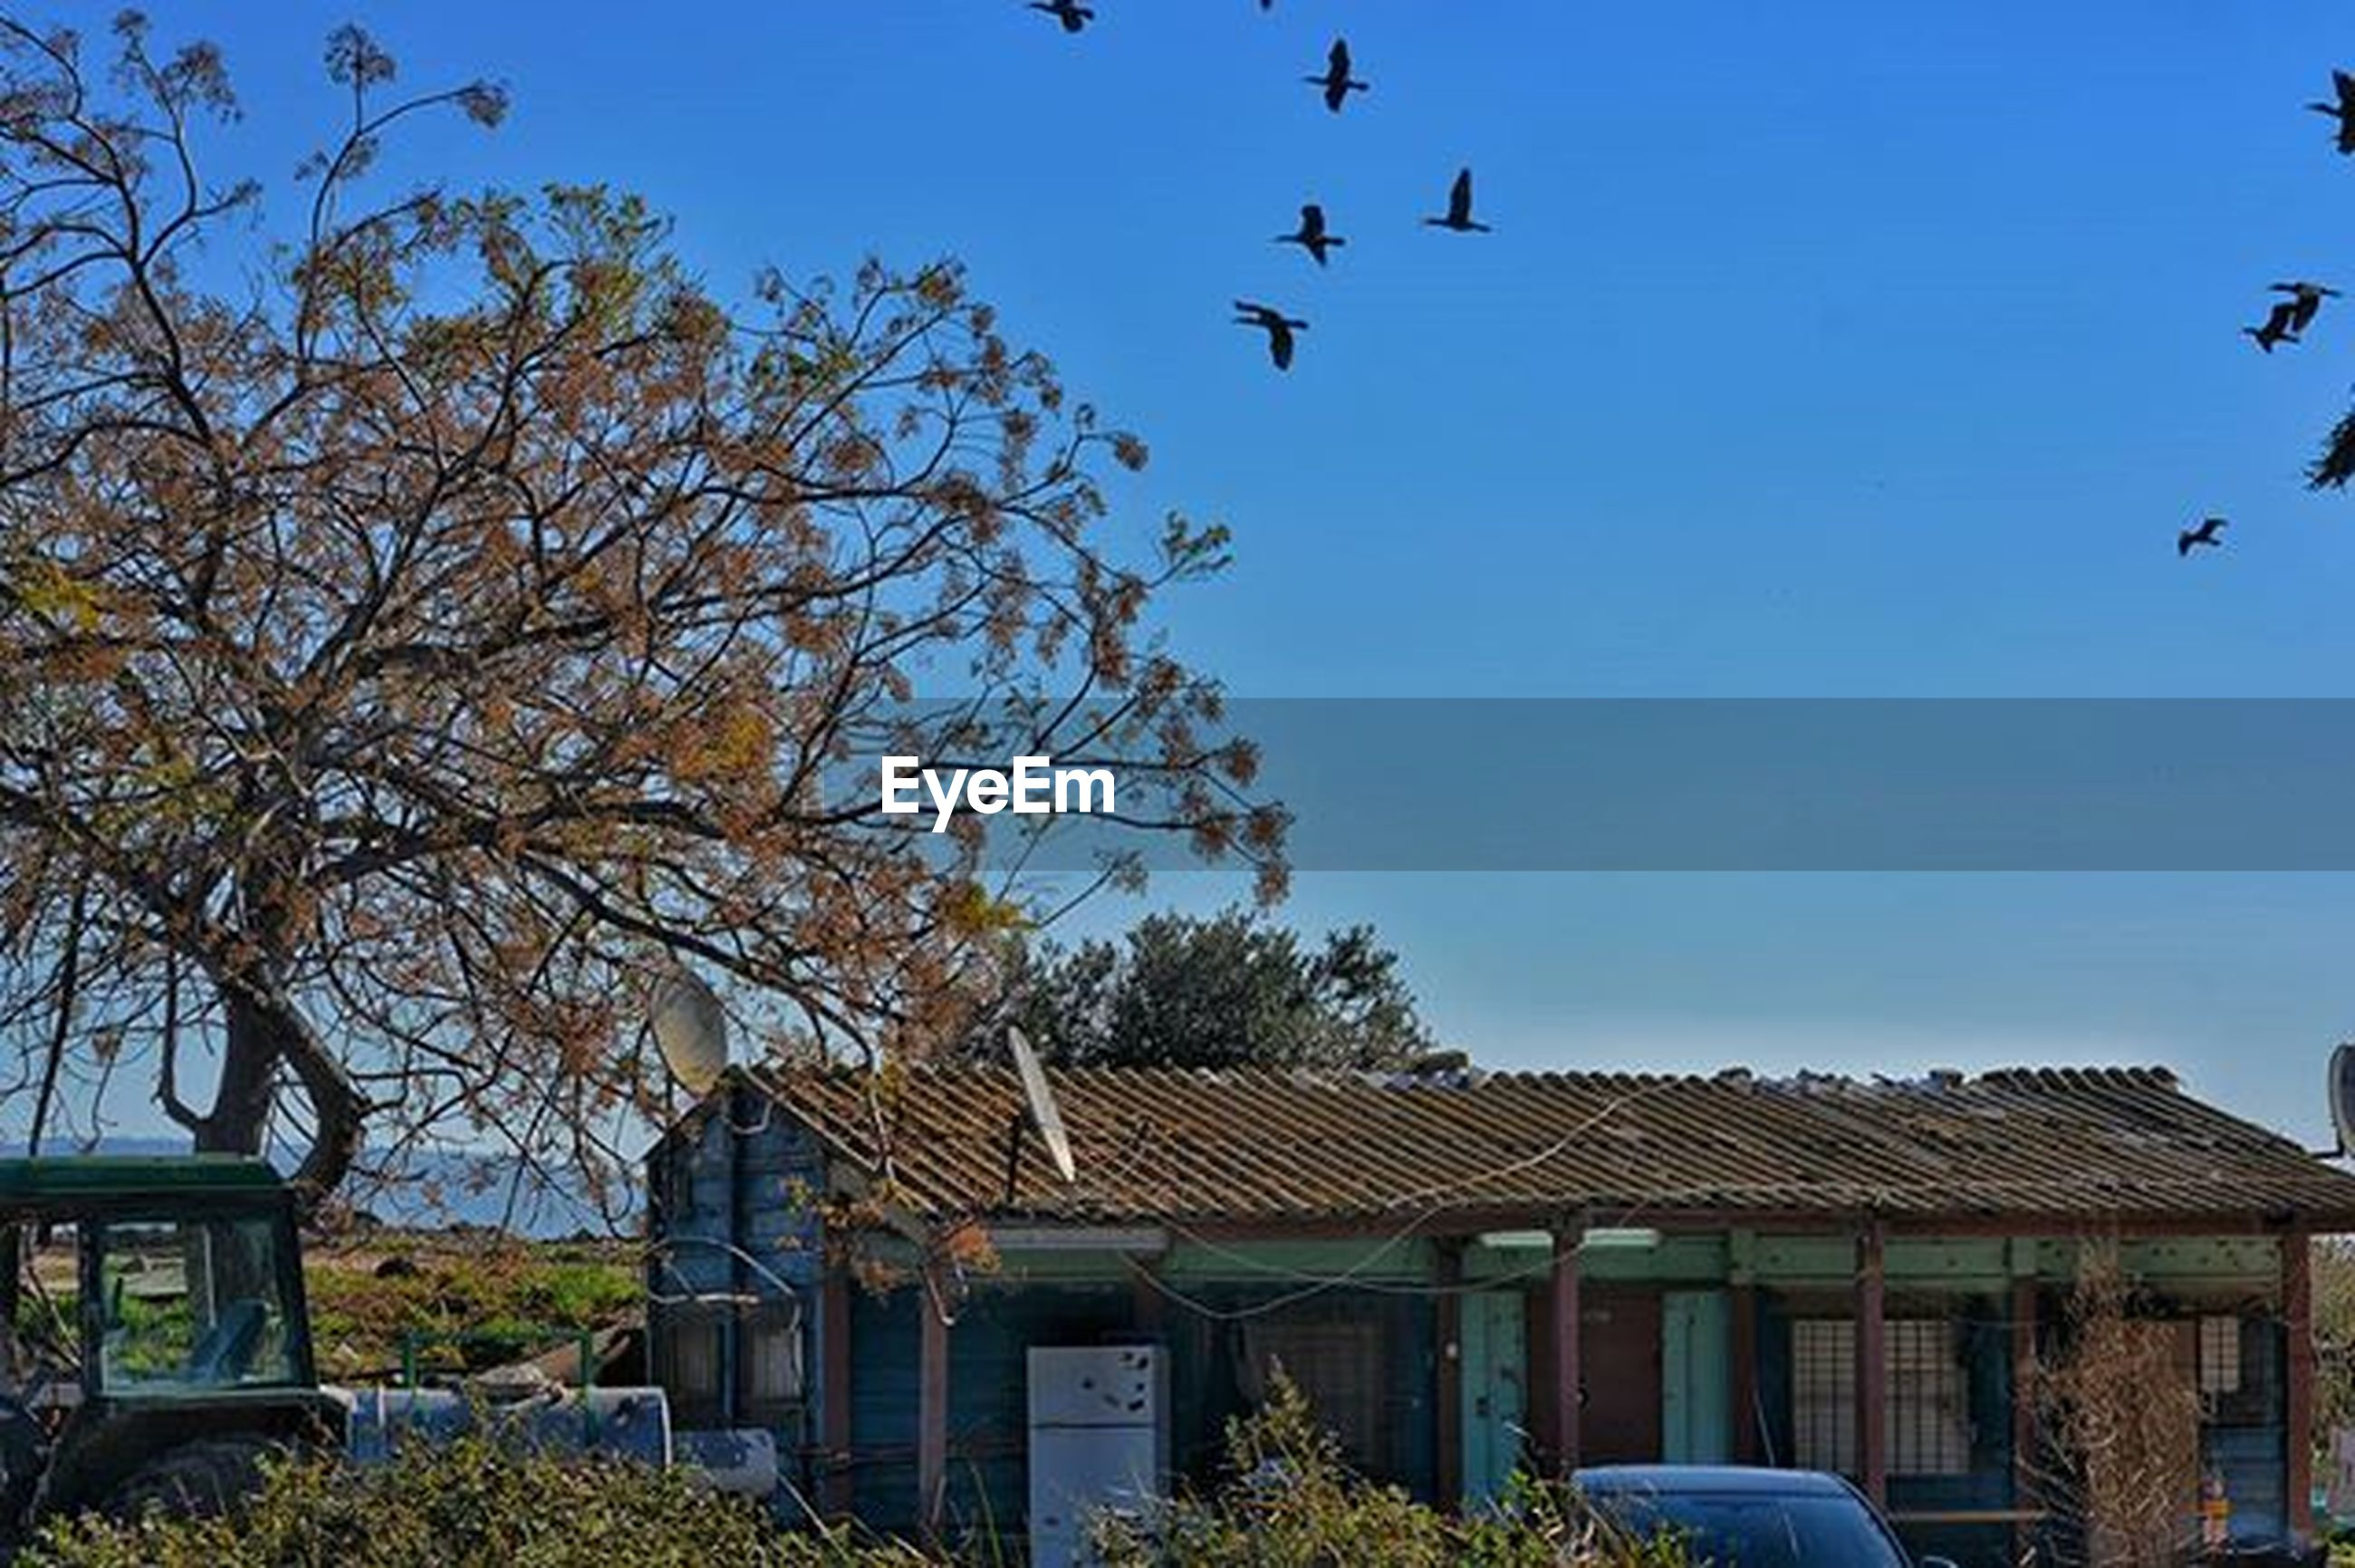 building exterior, clear sky, built structure, architecture, bird, tree, house, blue, animal themes, low angle view, roof, flying, copy space, animals in the wild, residential structure, wildlife, residential building, day, outdoors